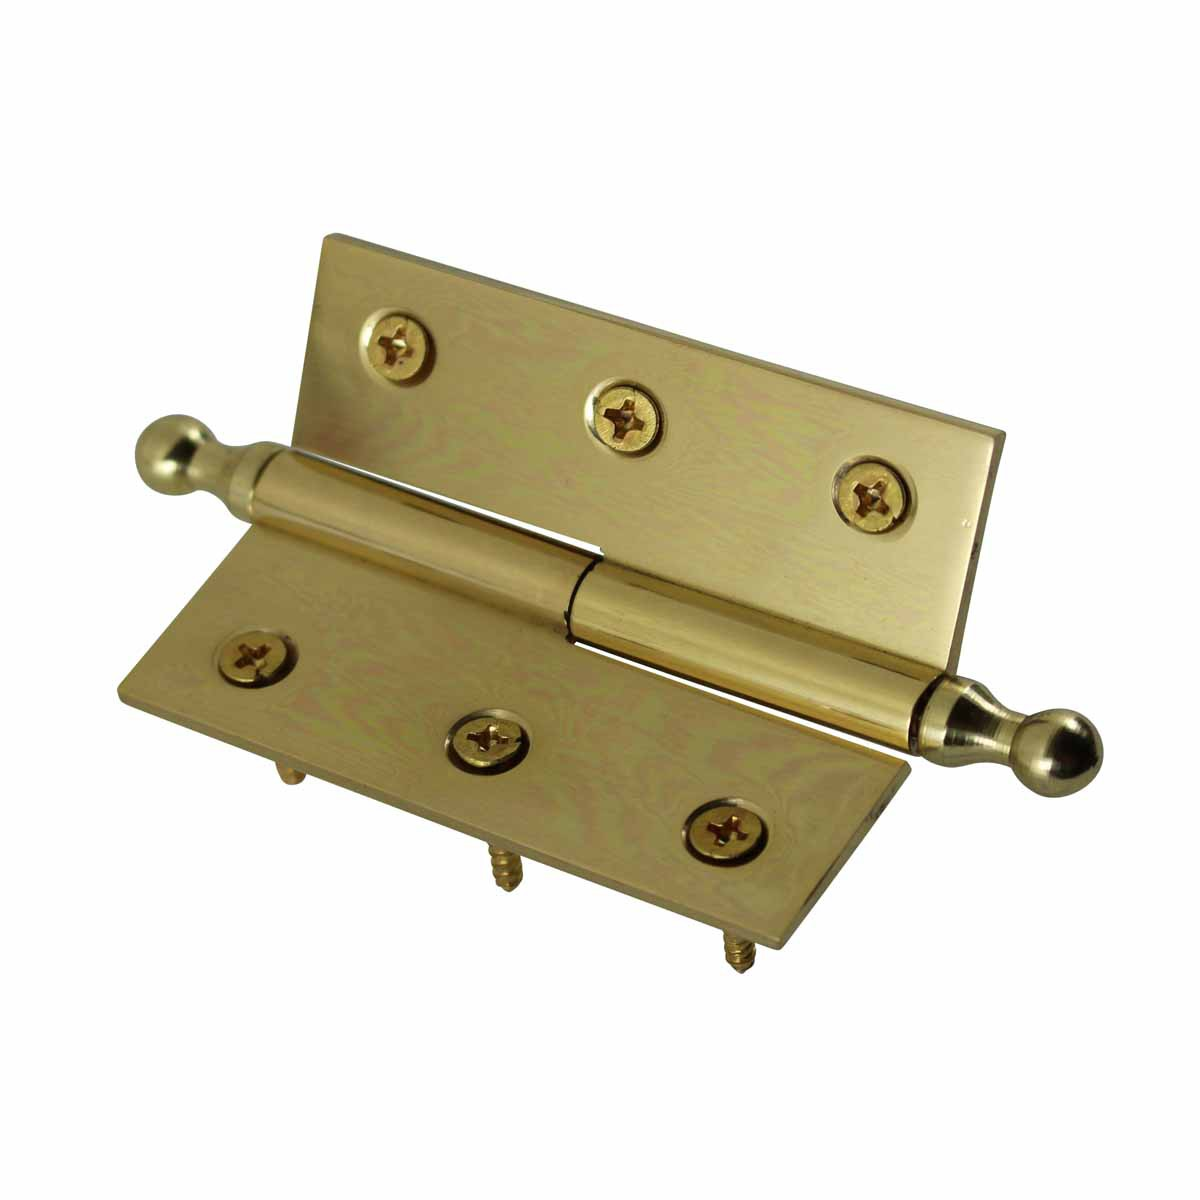 Lift Off Right Brass Cabinet Hinge 2 x 2.5 Ball Tip Door Hinges Door Hinge Solid Brass Hinge